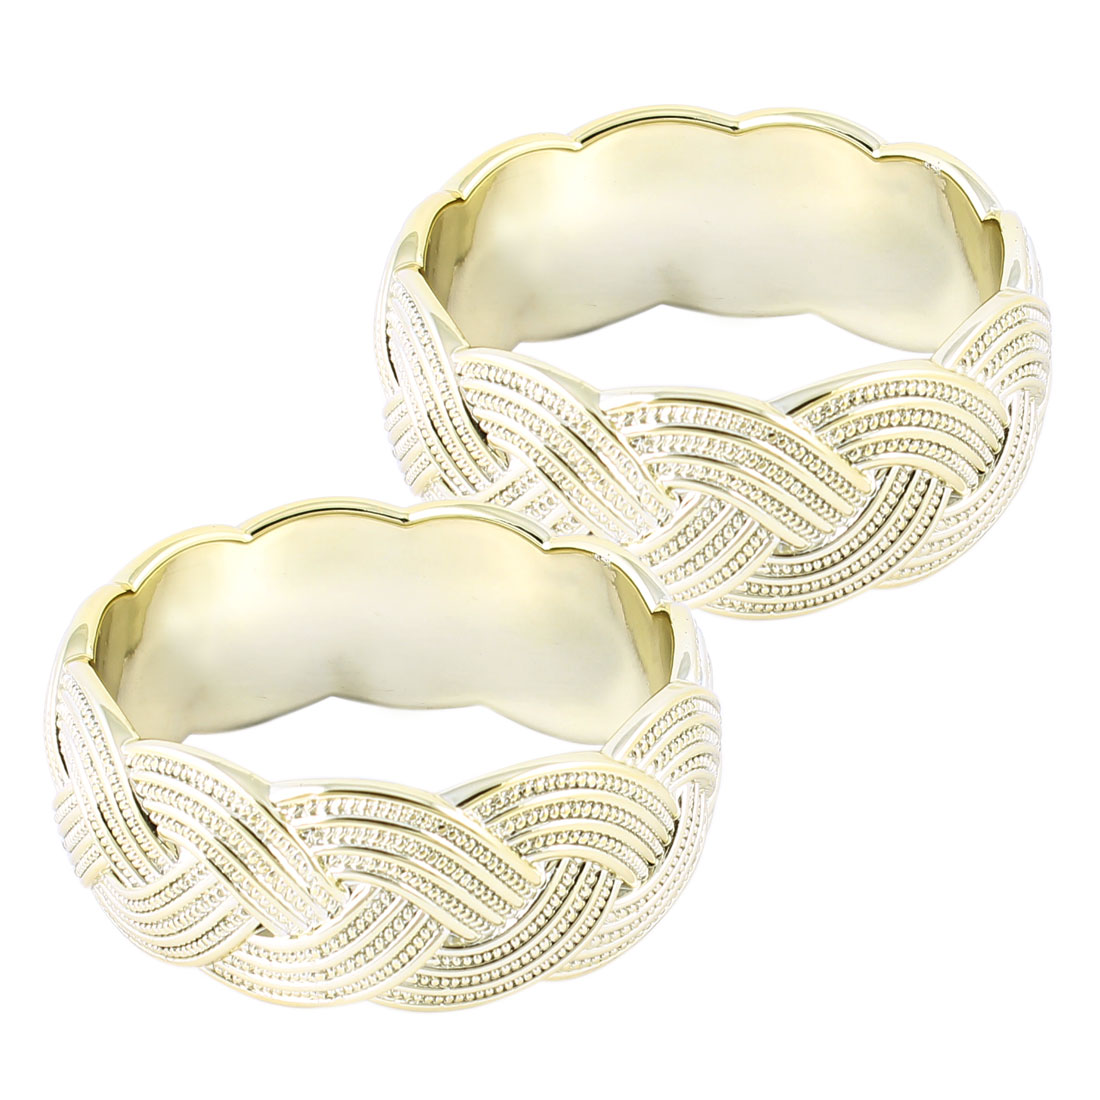 Woman Gold Tone Plastic Braid Pattern Bracelet Wrist Ornament 2 Pcs